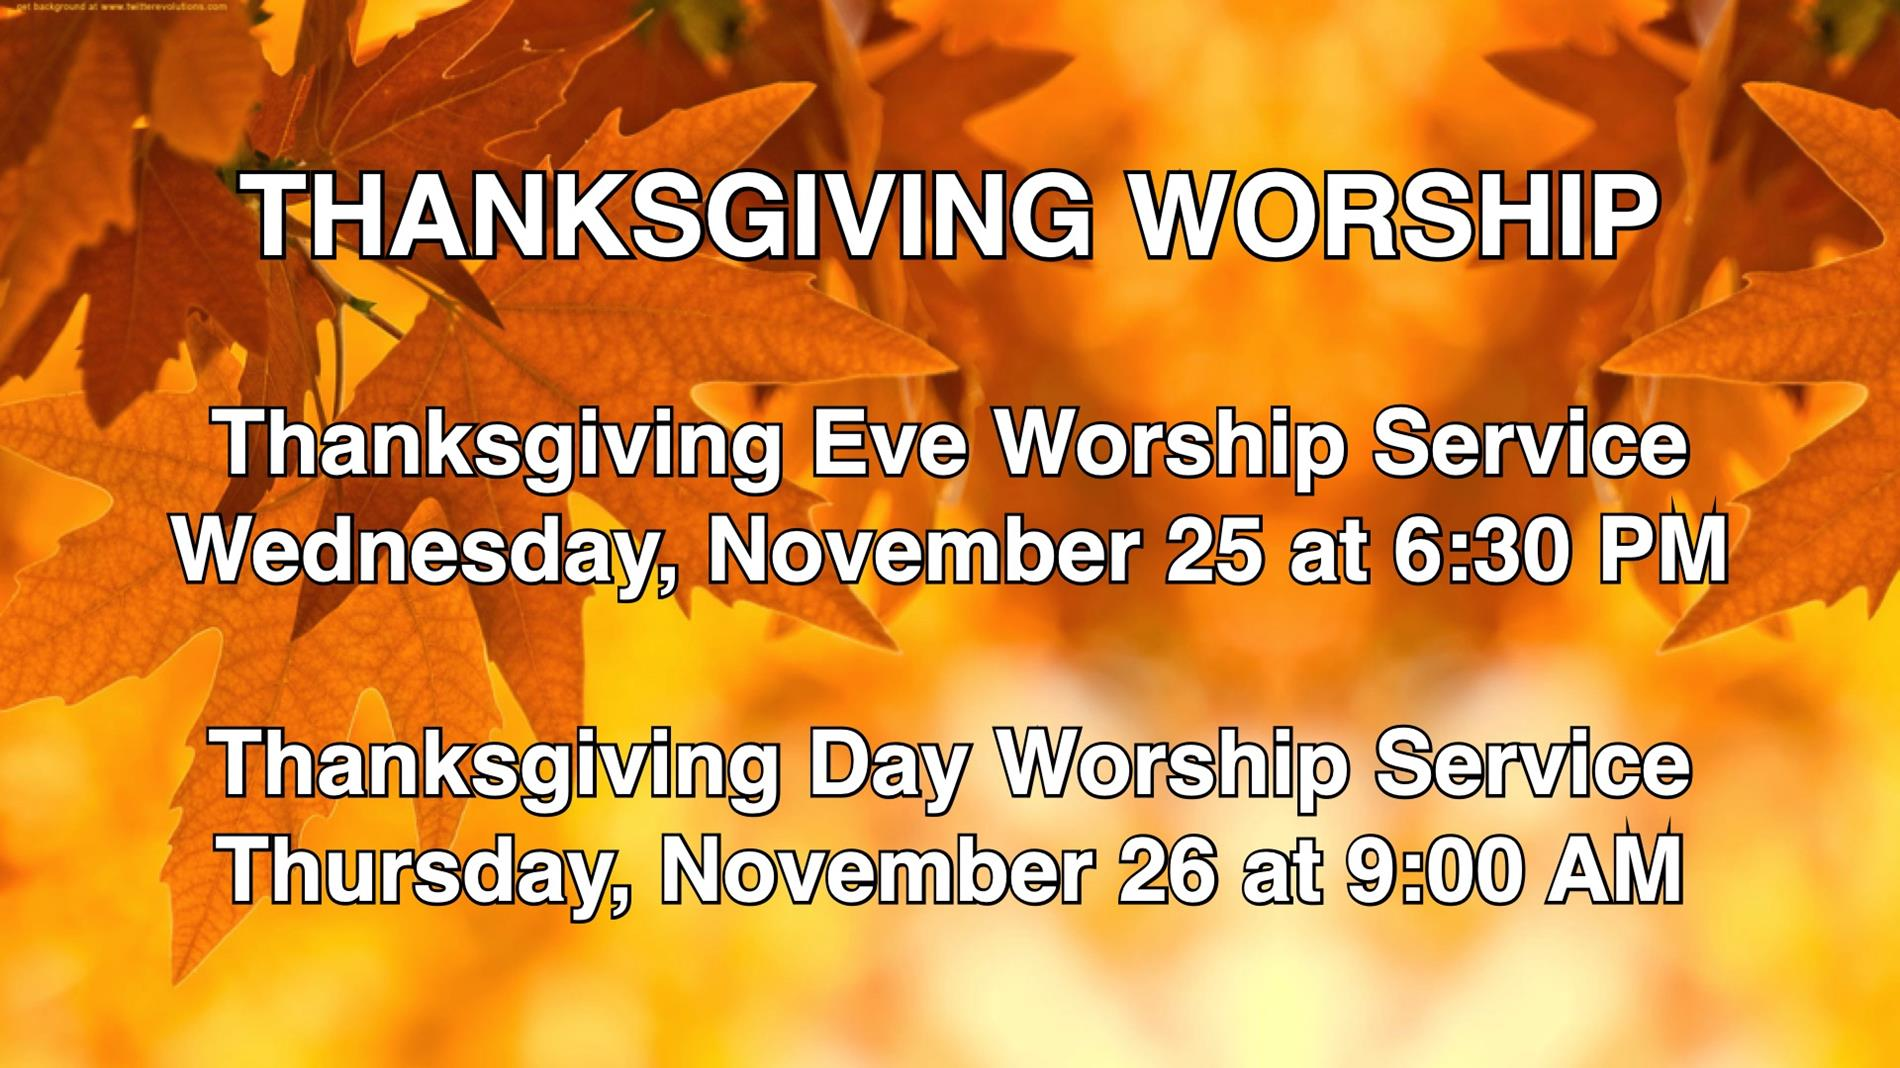 Thanksgiving Worship Services & Times